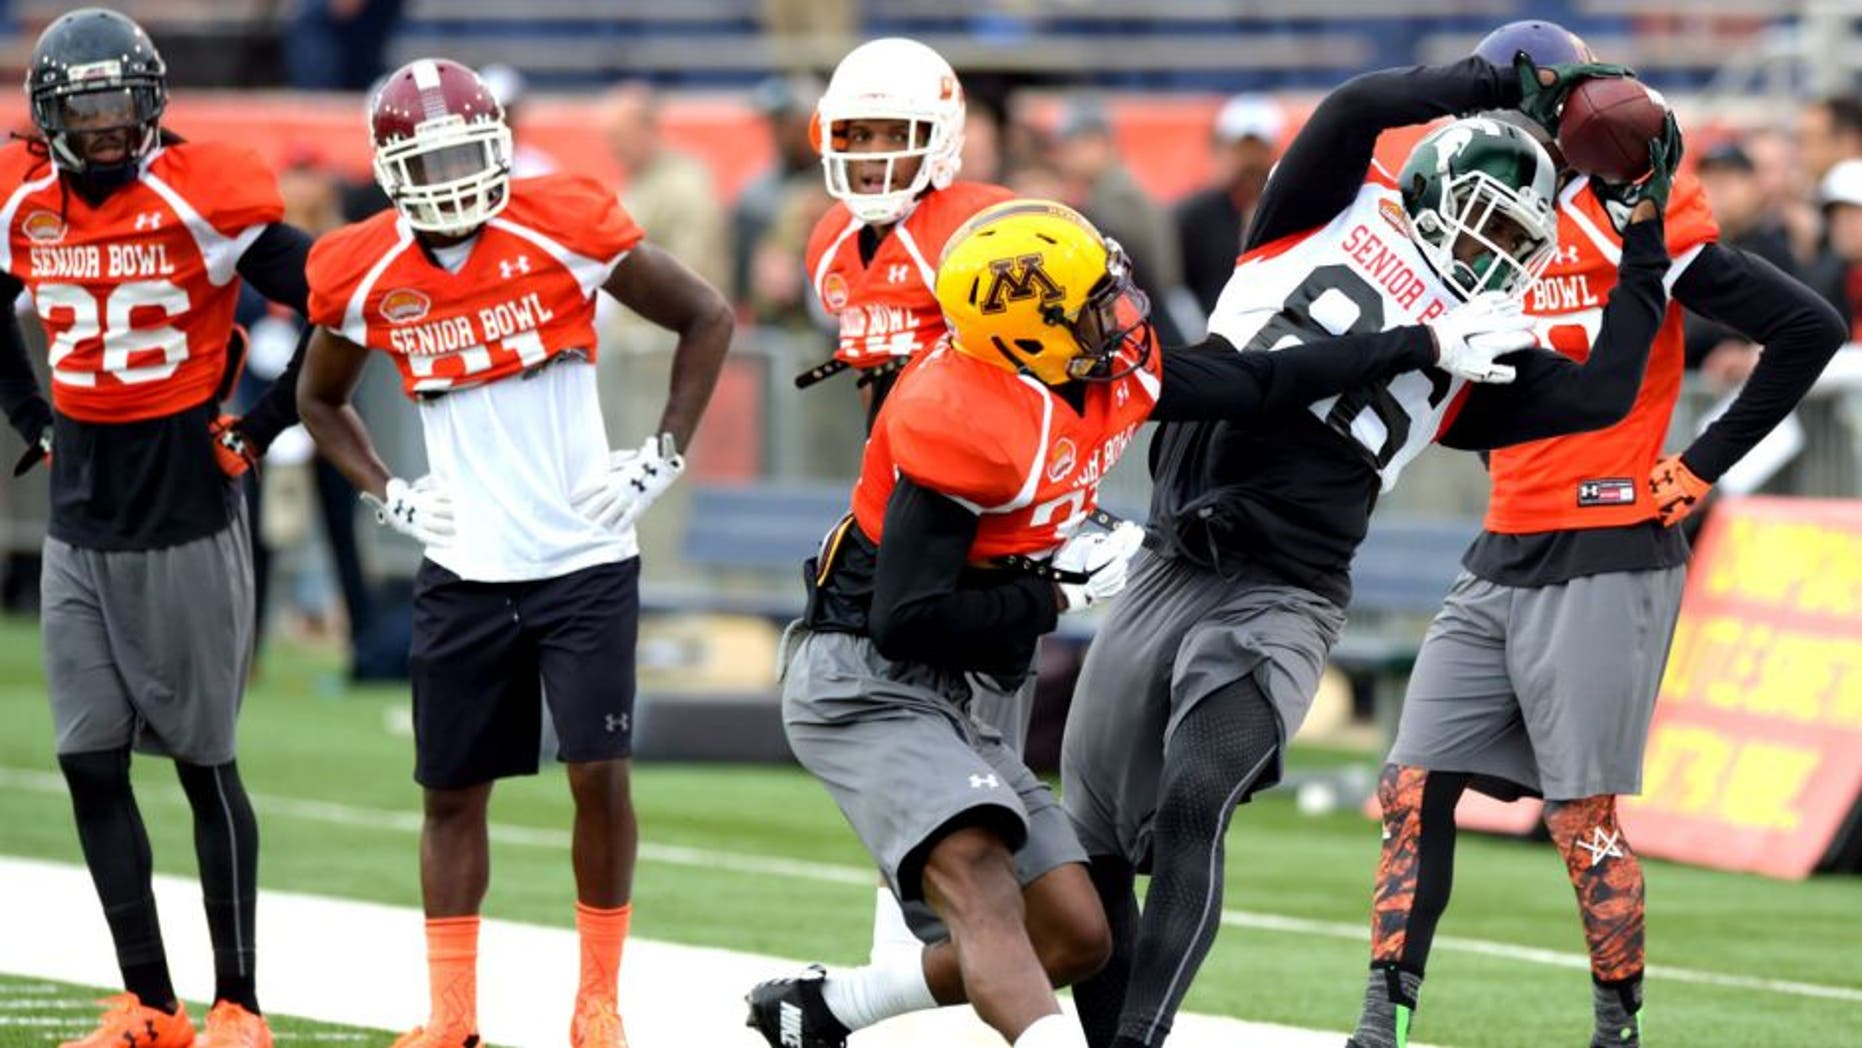 Jan 26, 2016; Mobile, AL, USA; North squad wide receiver Aaron Burbridge of Michigan State (86) makes a catch near the sideline as defensive back Eric Murray of Minnesota (31) defends during Senior Bowl practice at Ladd-Peebles Stadium. Mandatory Credit: Glenn Andrews-USA TODAY Sports